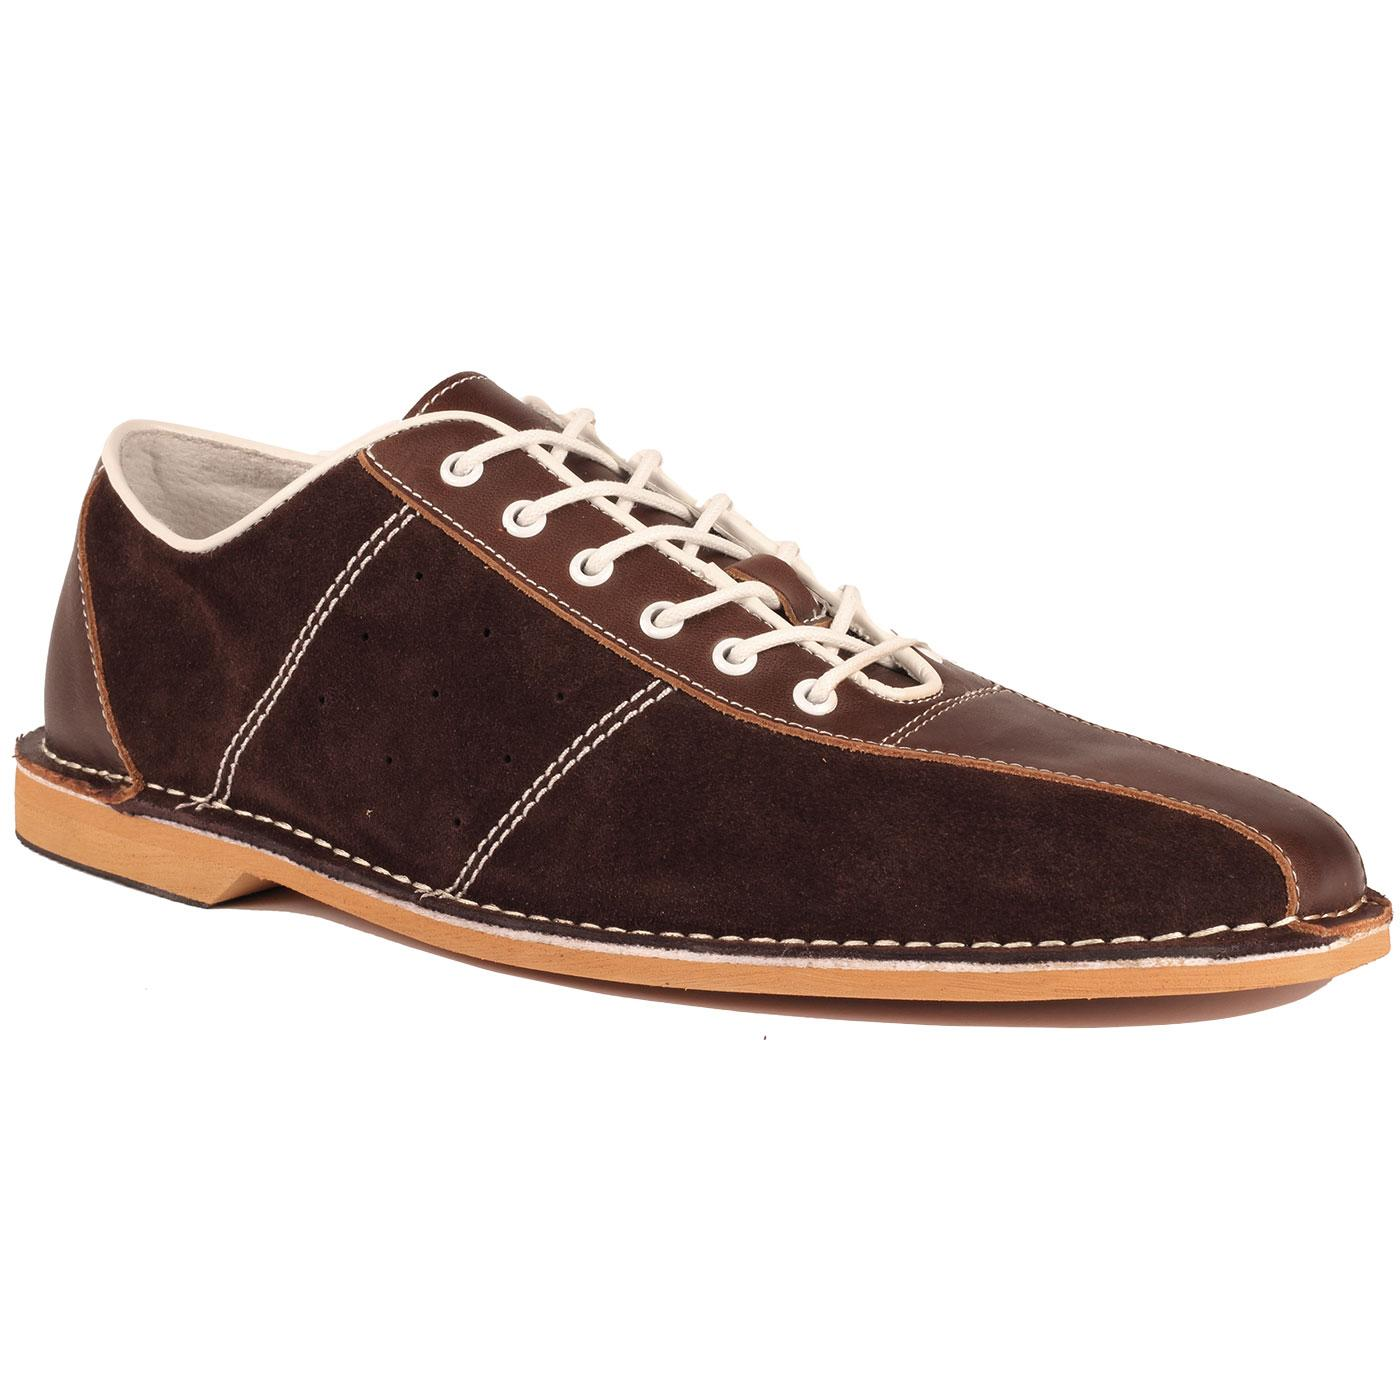 Madcap England All Up Retro Mod Northern Soul Bowling Shoes in Brown